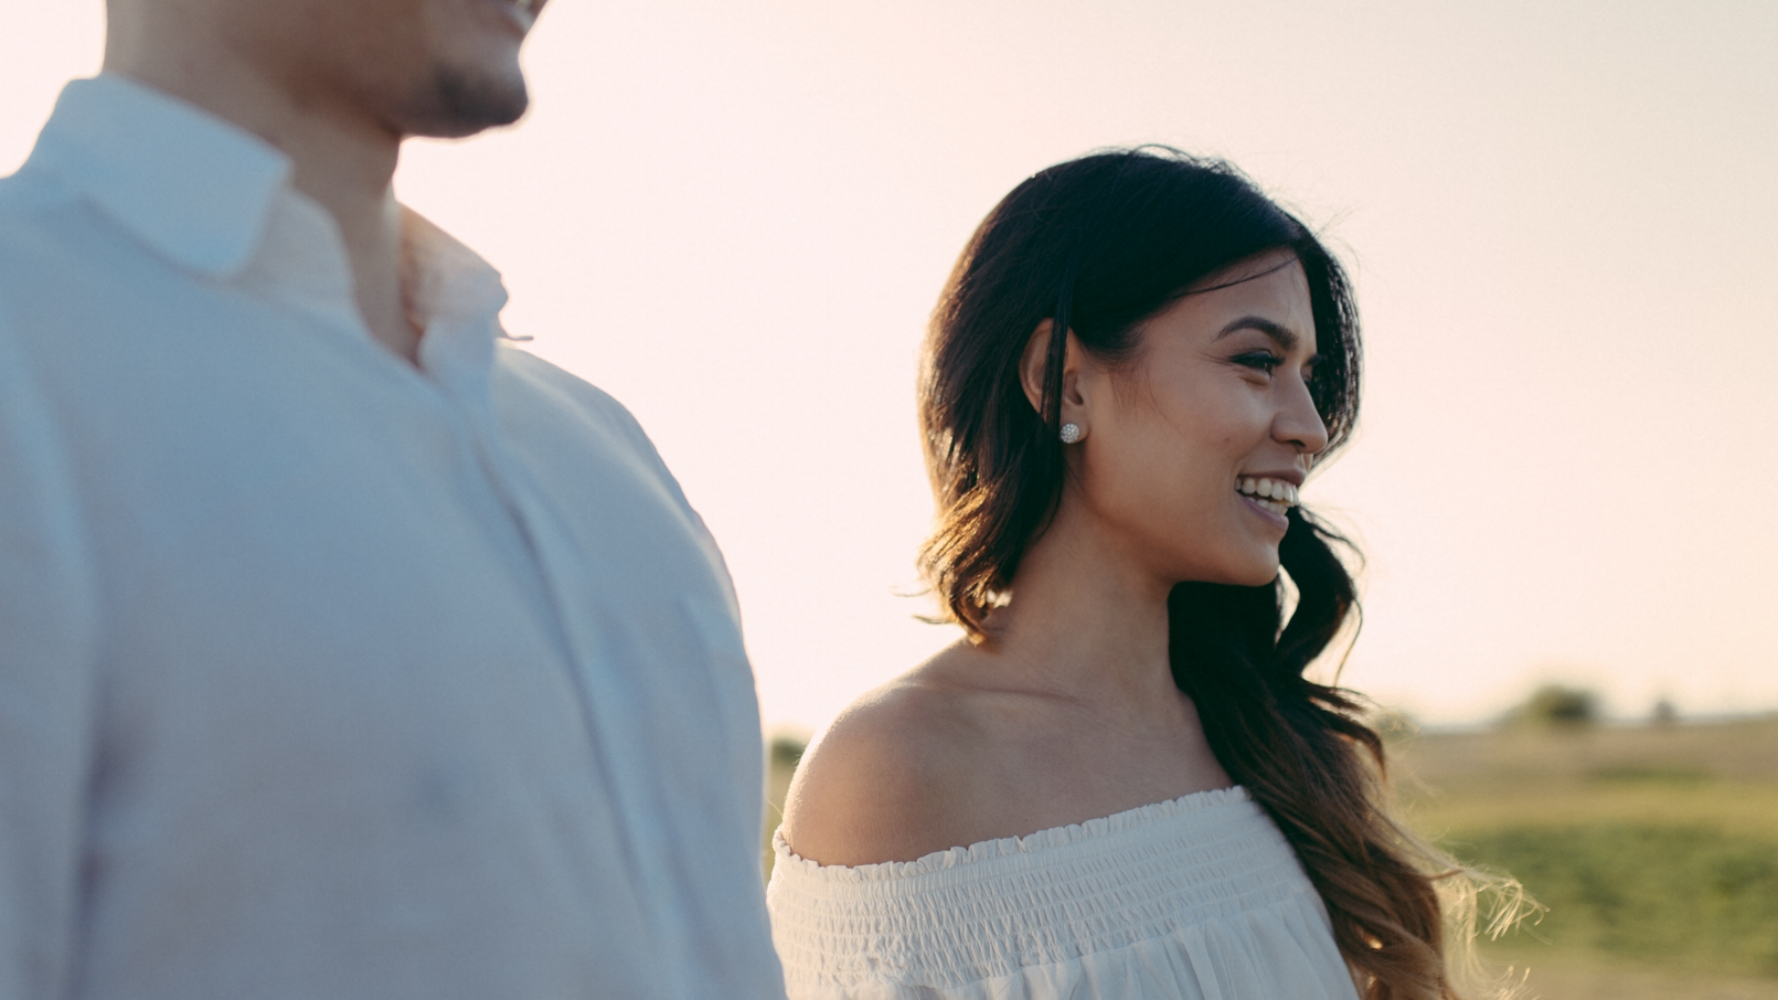 herafilms_nan_jimmy_prewedding_hera_selects_web-1.jpg